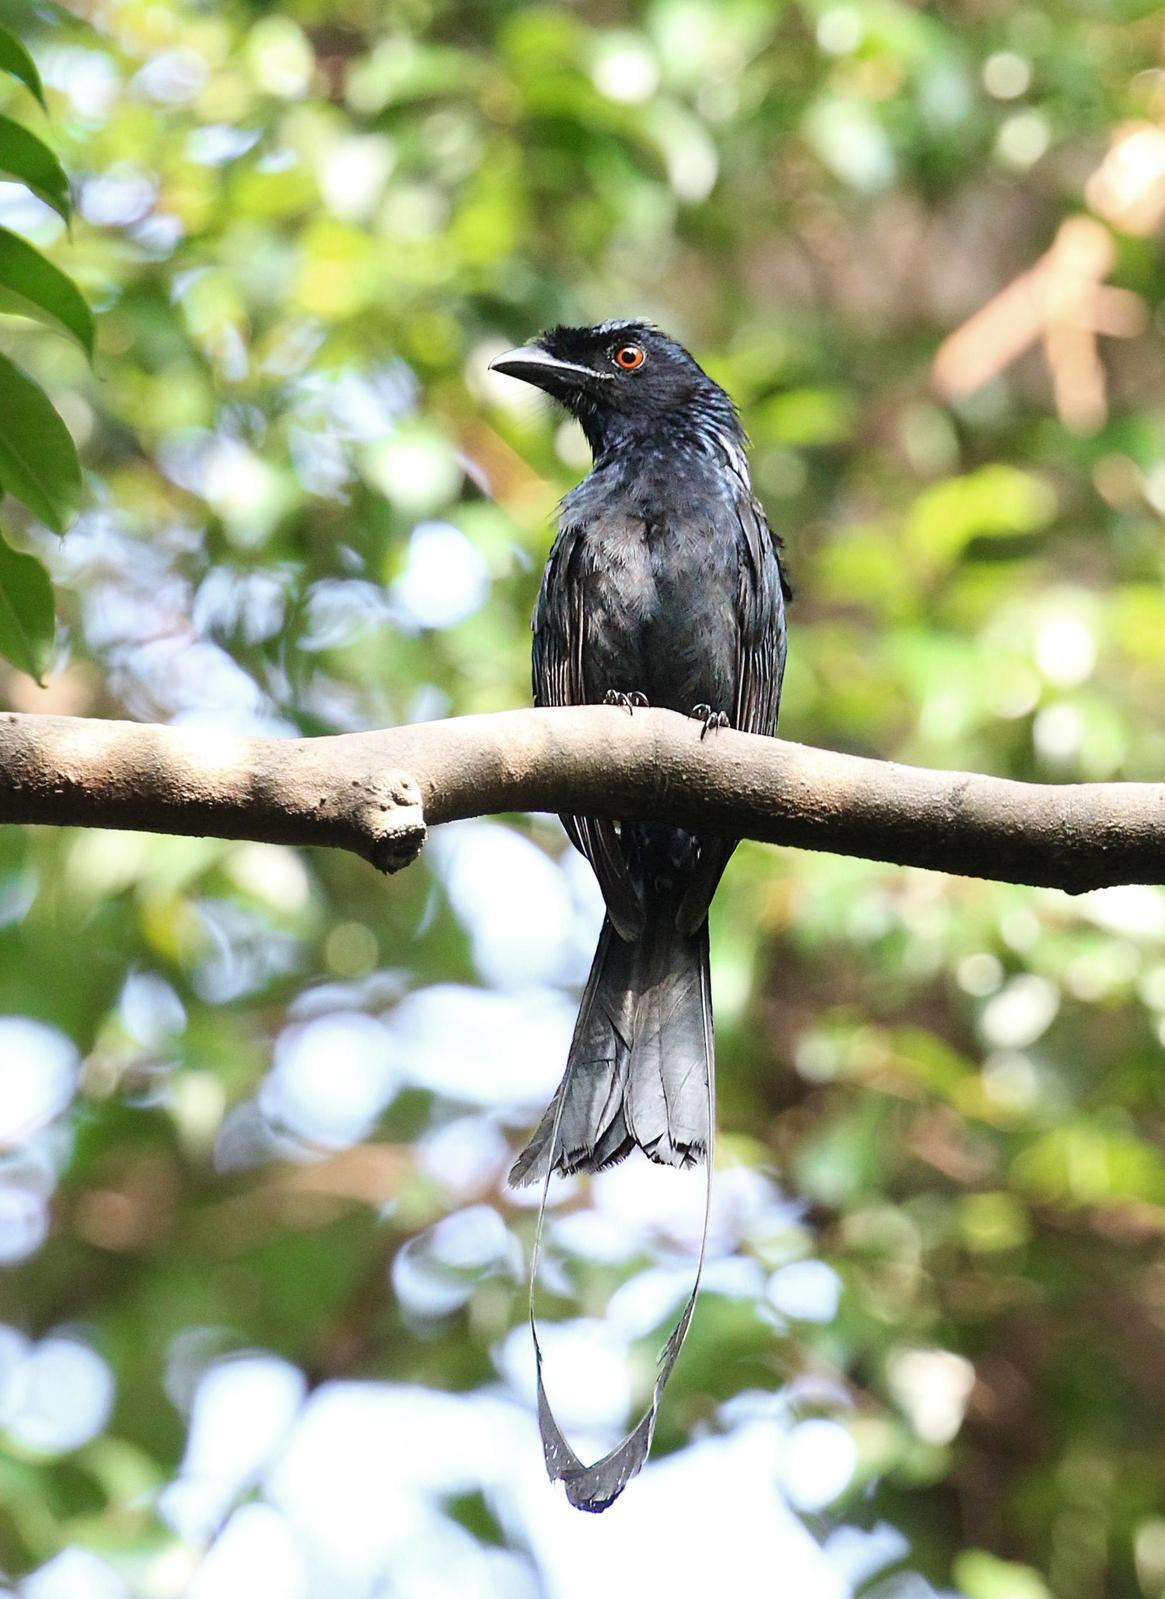 Greater Racket-tailed Drongo Photo by Kenneth Cheong